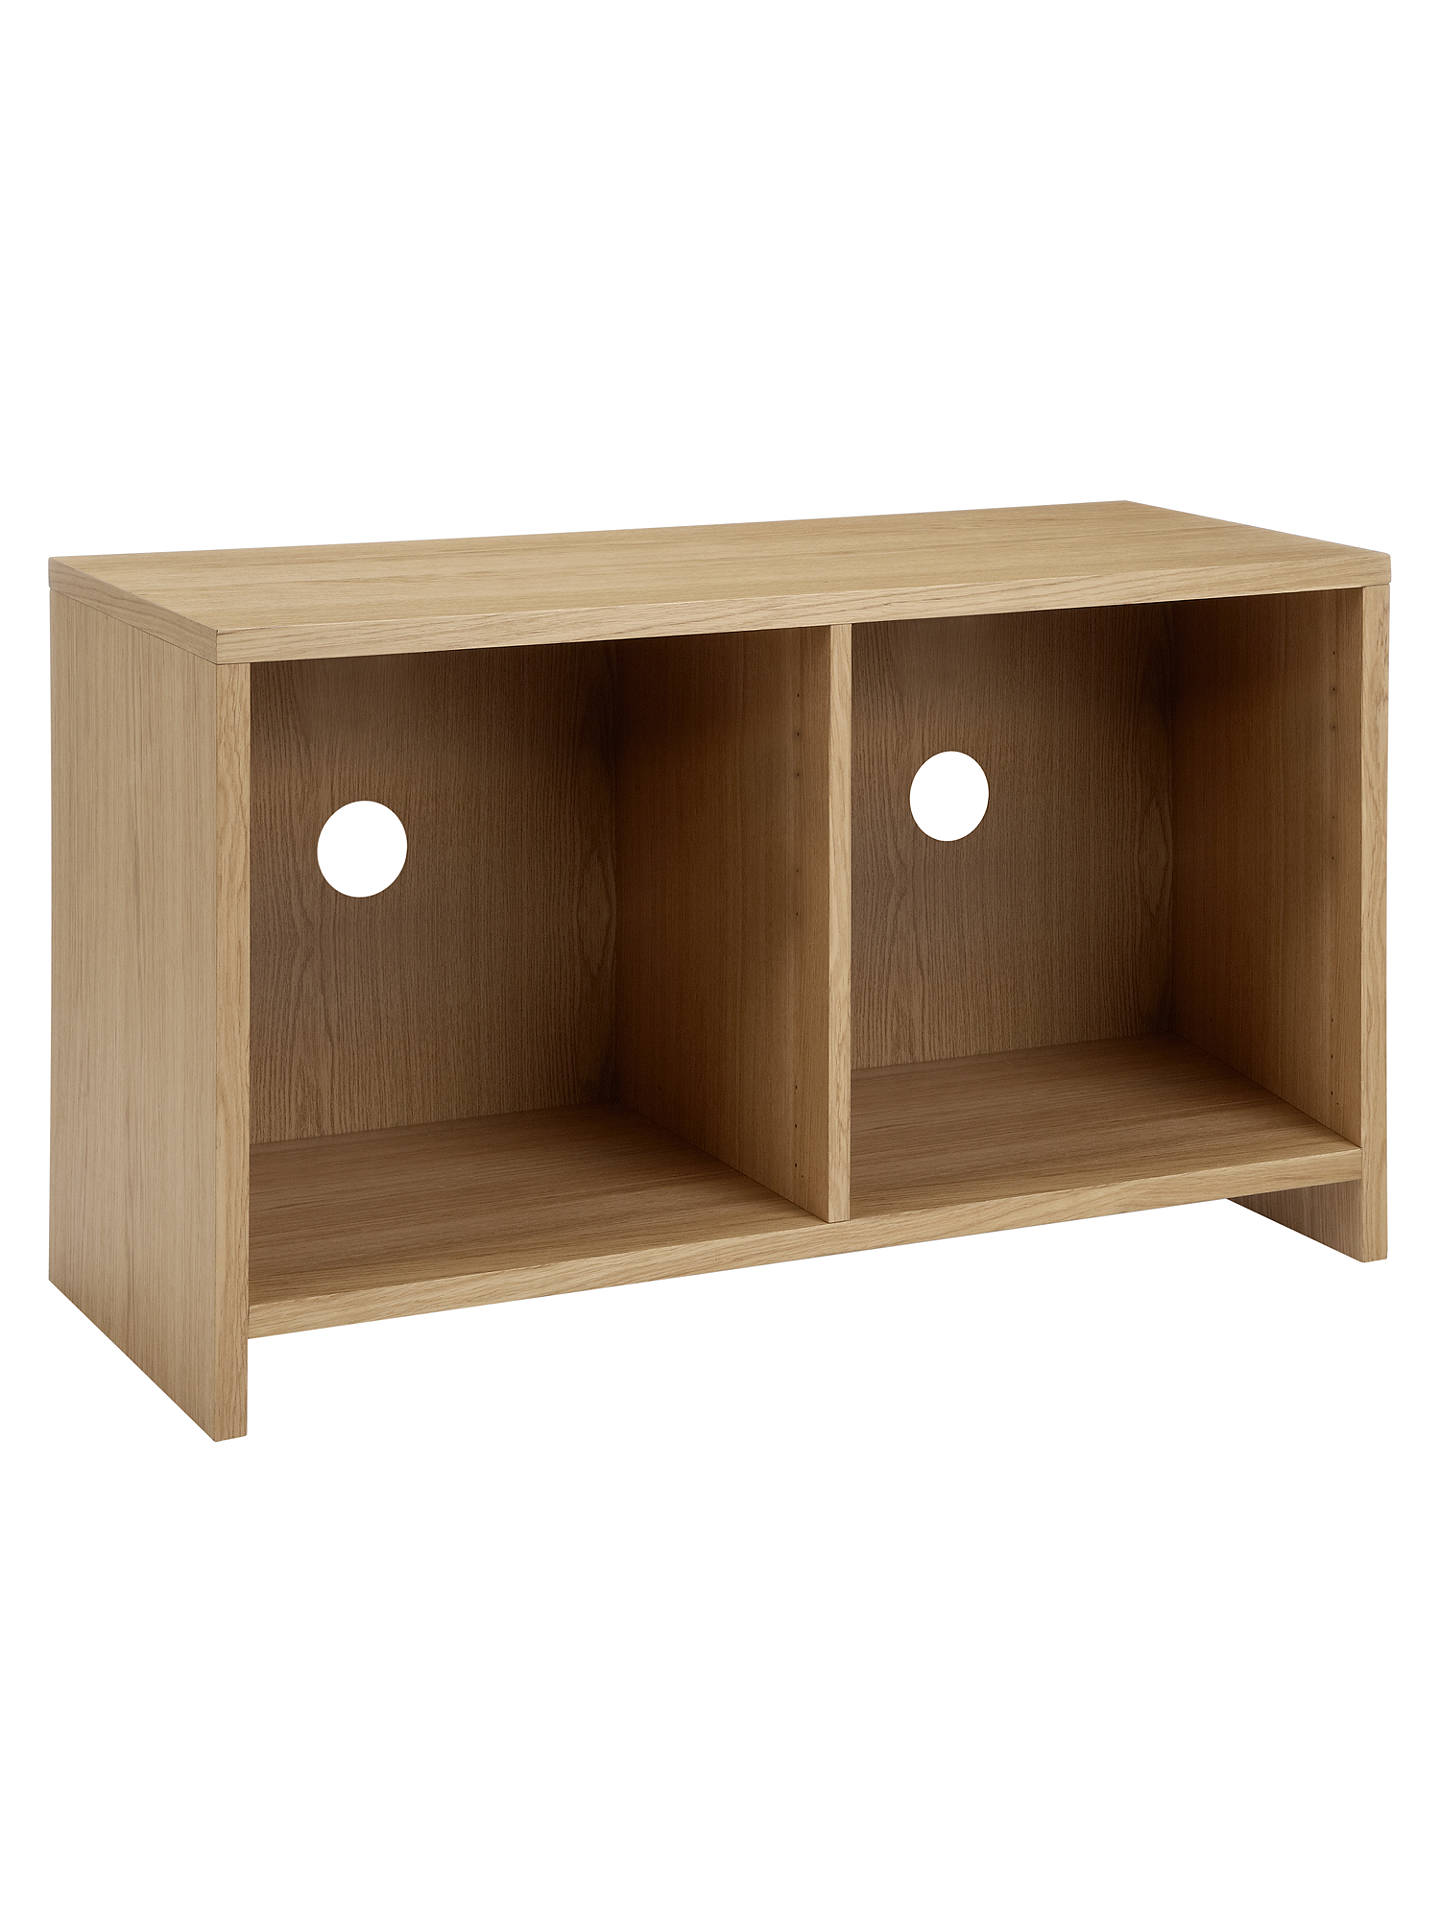 Buy House by John Lewis Oxford 2 x 1 Media Unit, FSC Oak Online at johnlewis.com